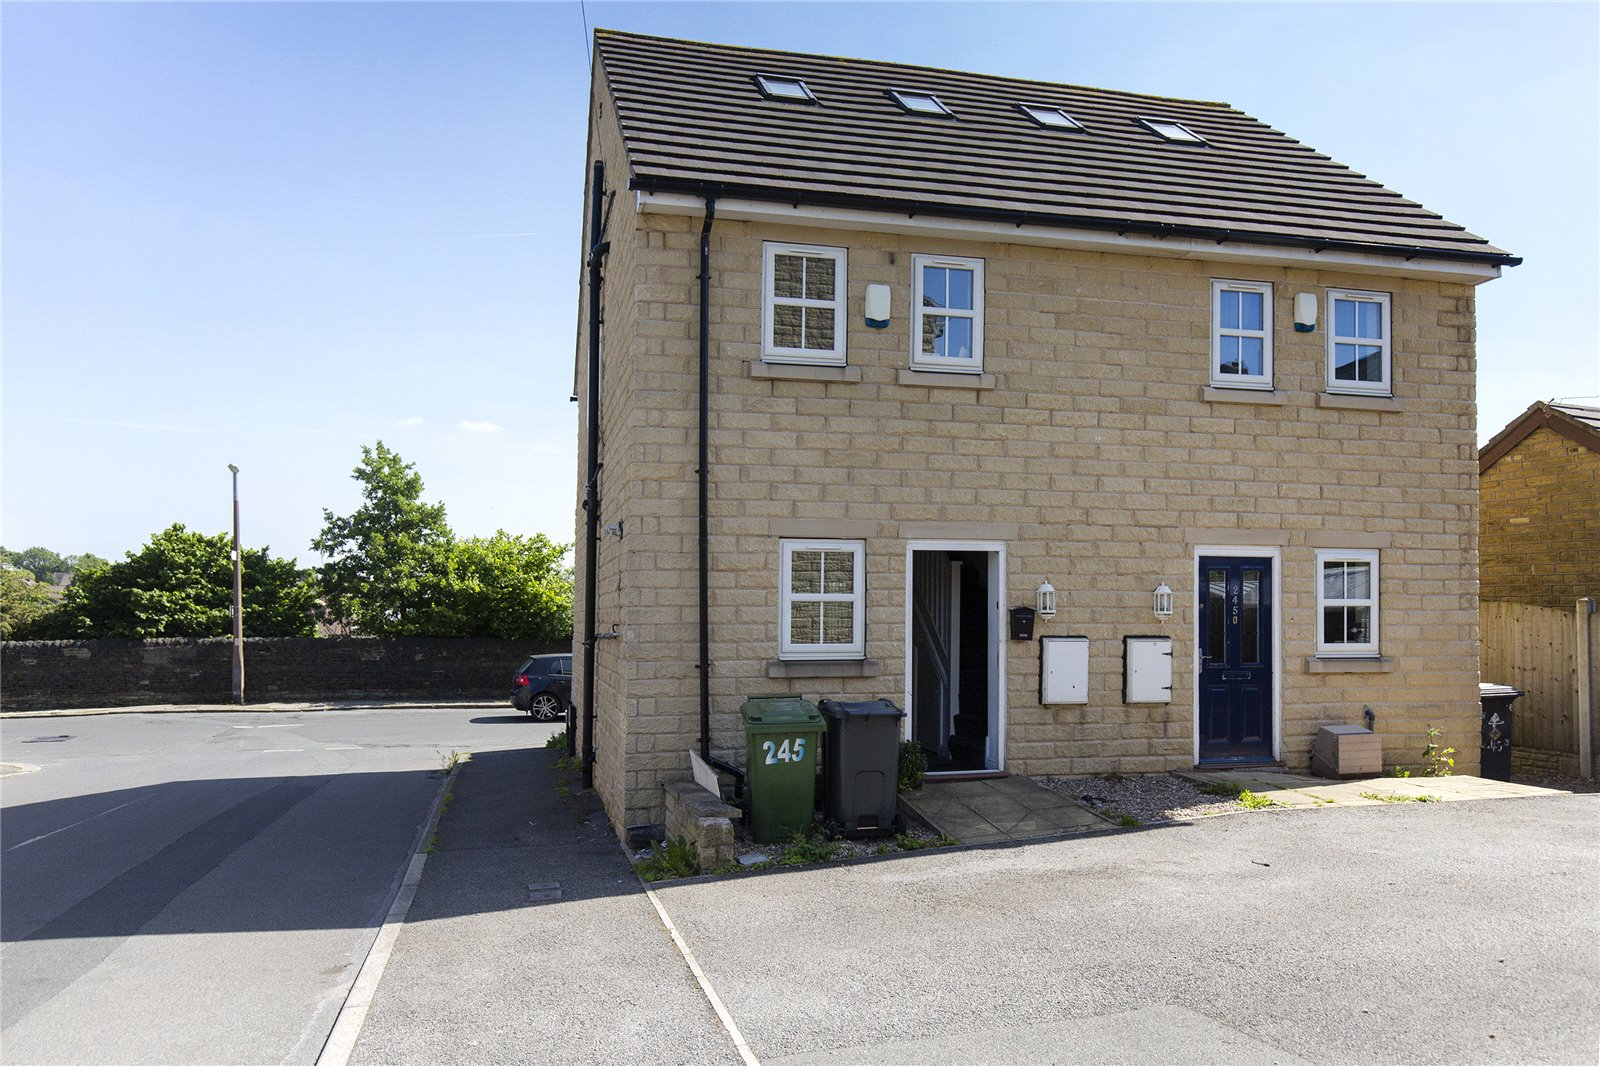 Whitegates Dewsbury 3 Bedroom House For Sale In Healey